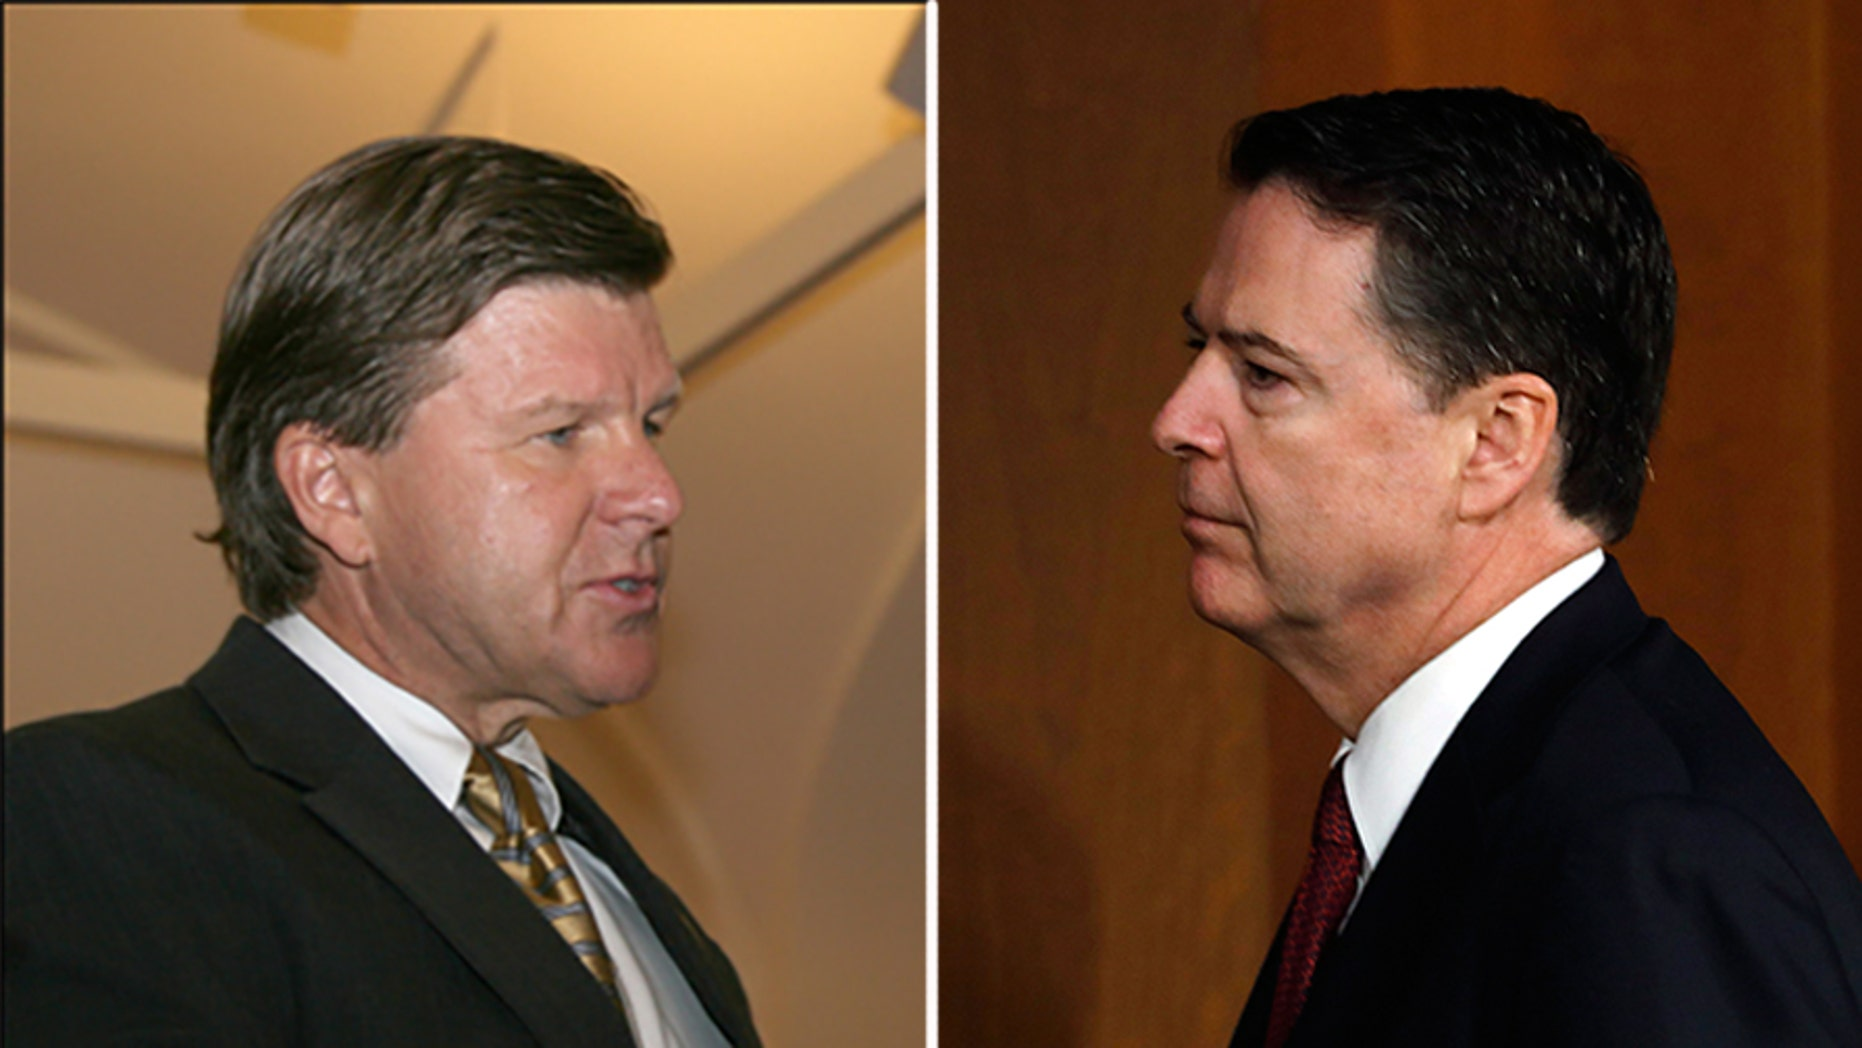 Michael Kortan, left, is leaving the FBI, after previously serving under James Comey and Robert Mueller.